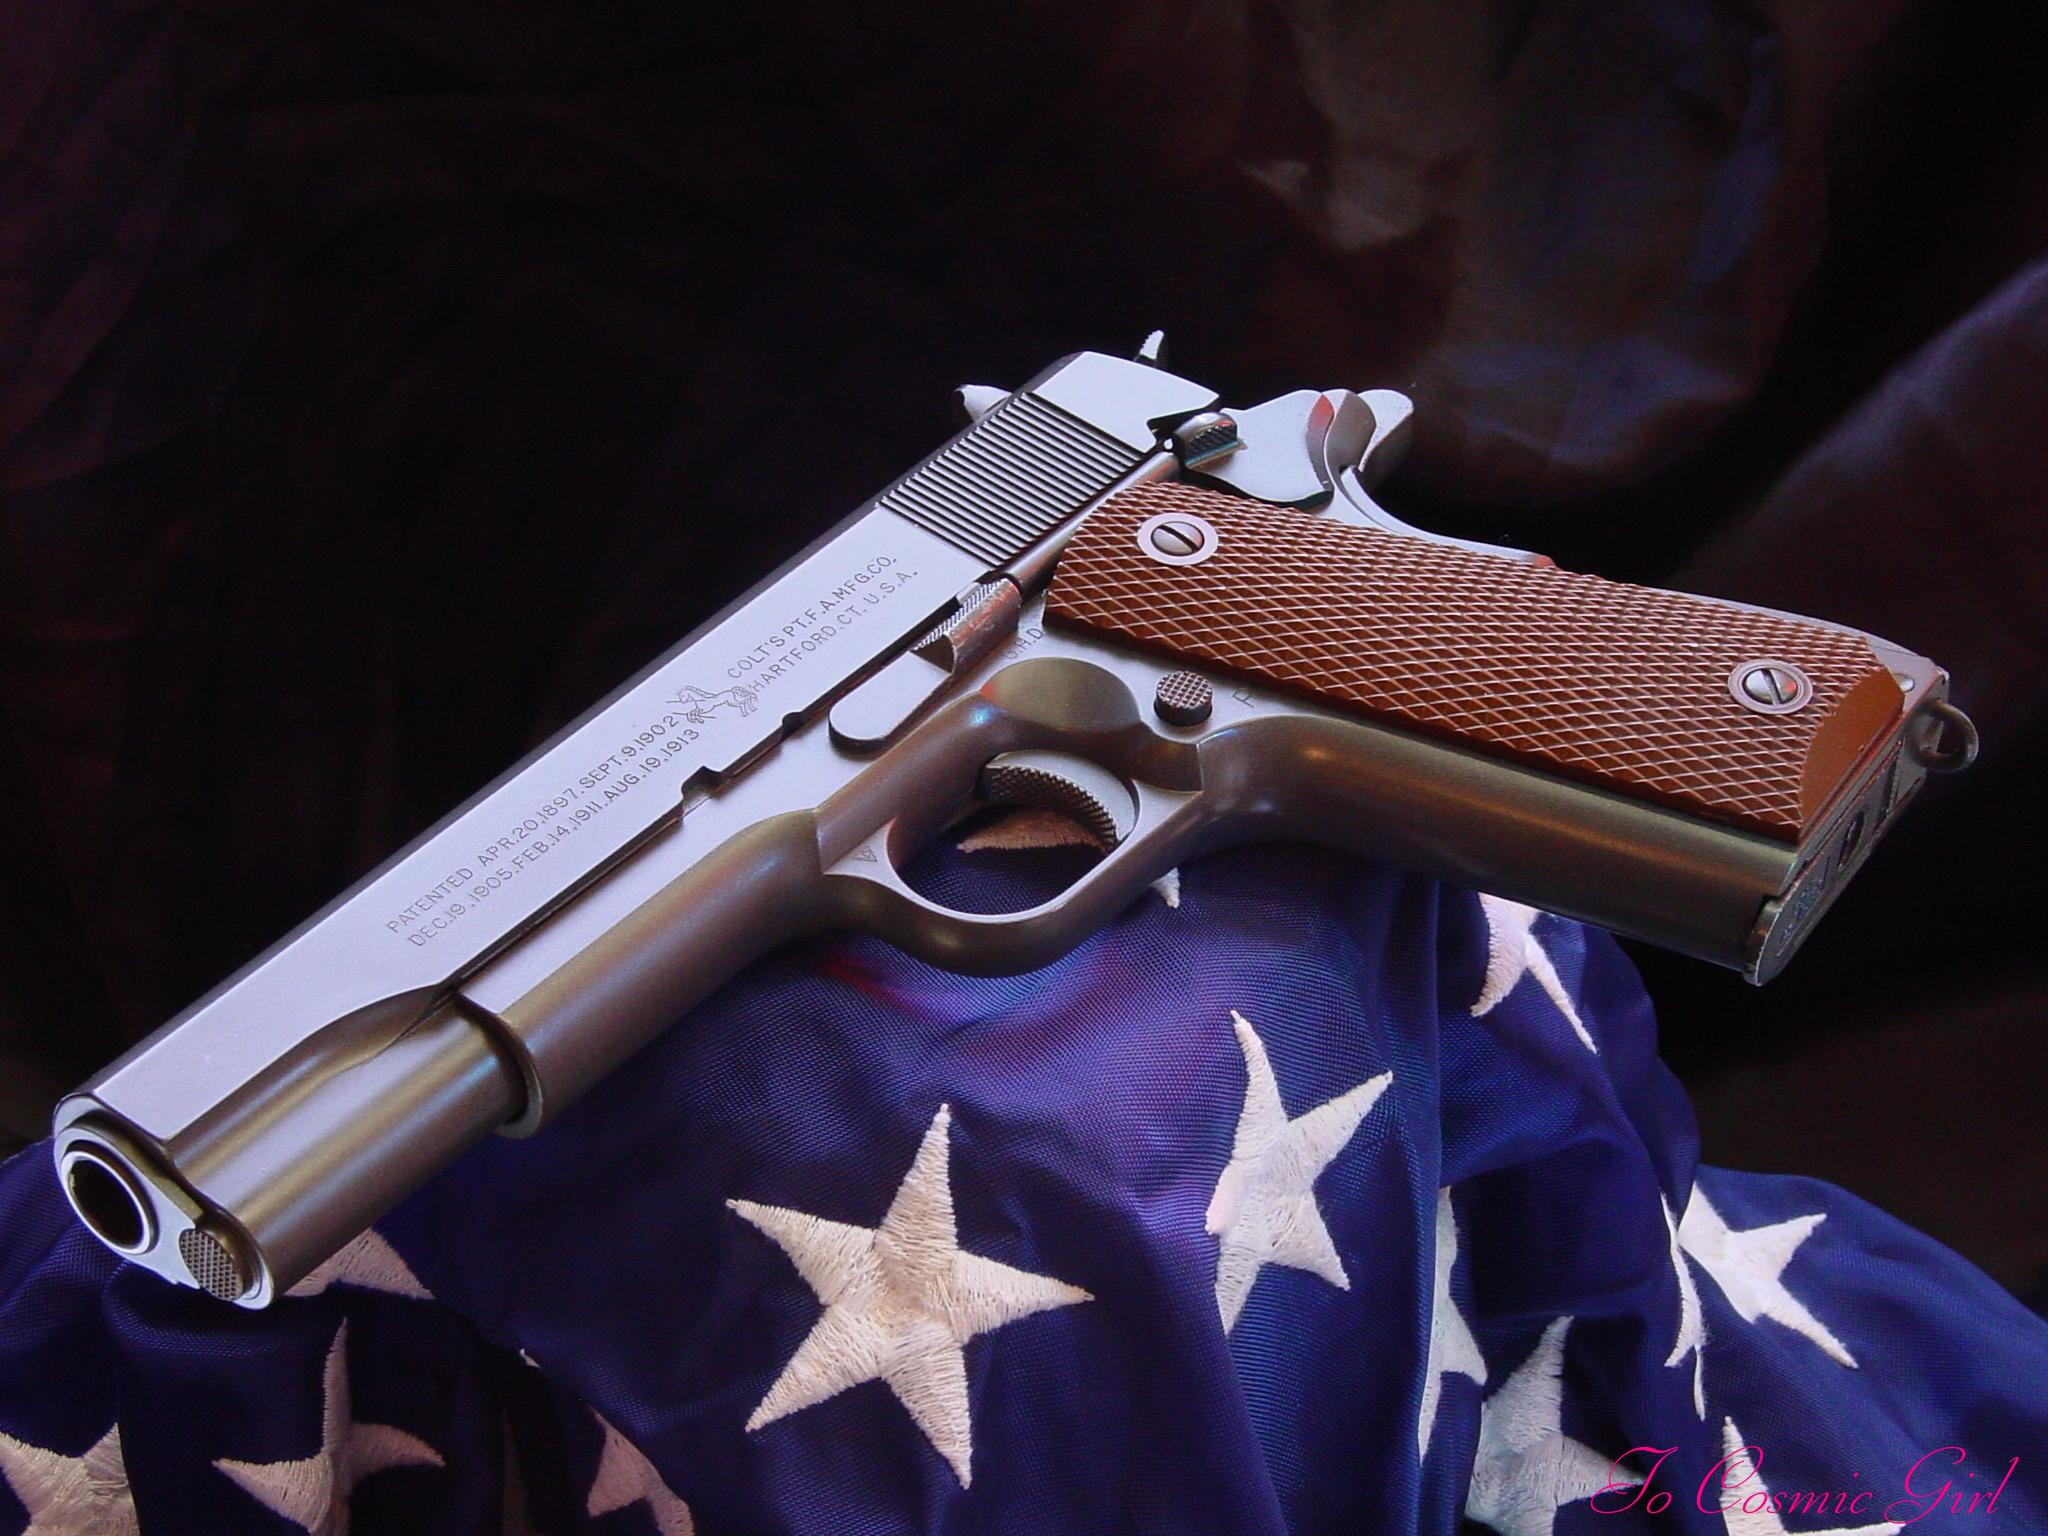 50] Colt 1911 Wallpaper Backgrounds on WallpaperSafari 2048x1536